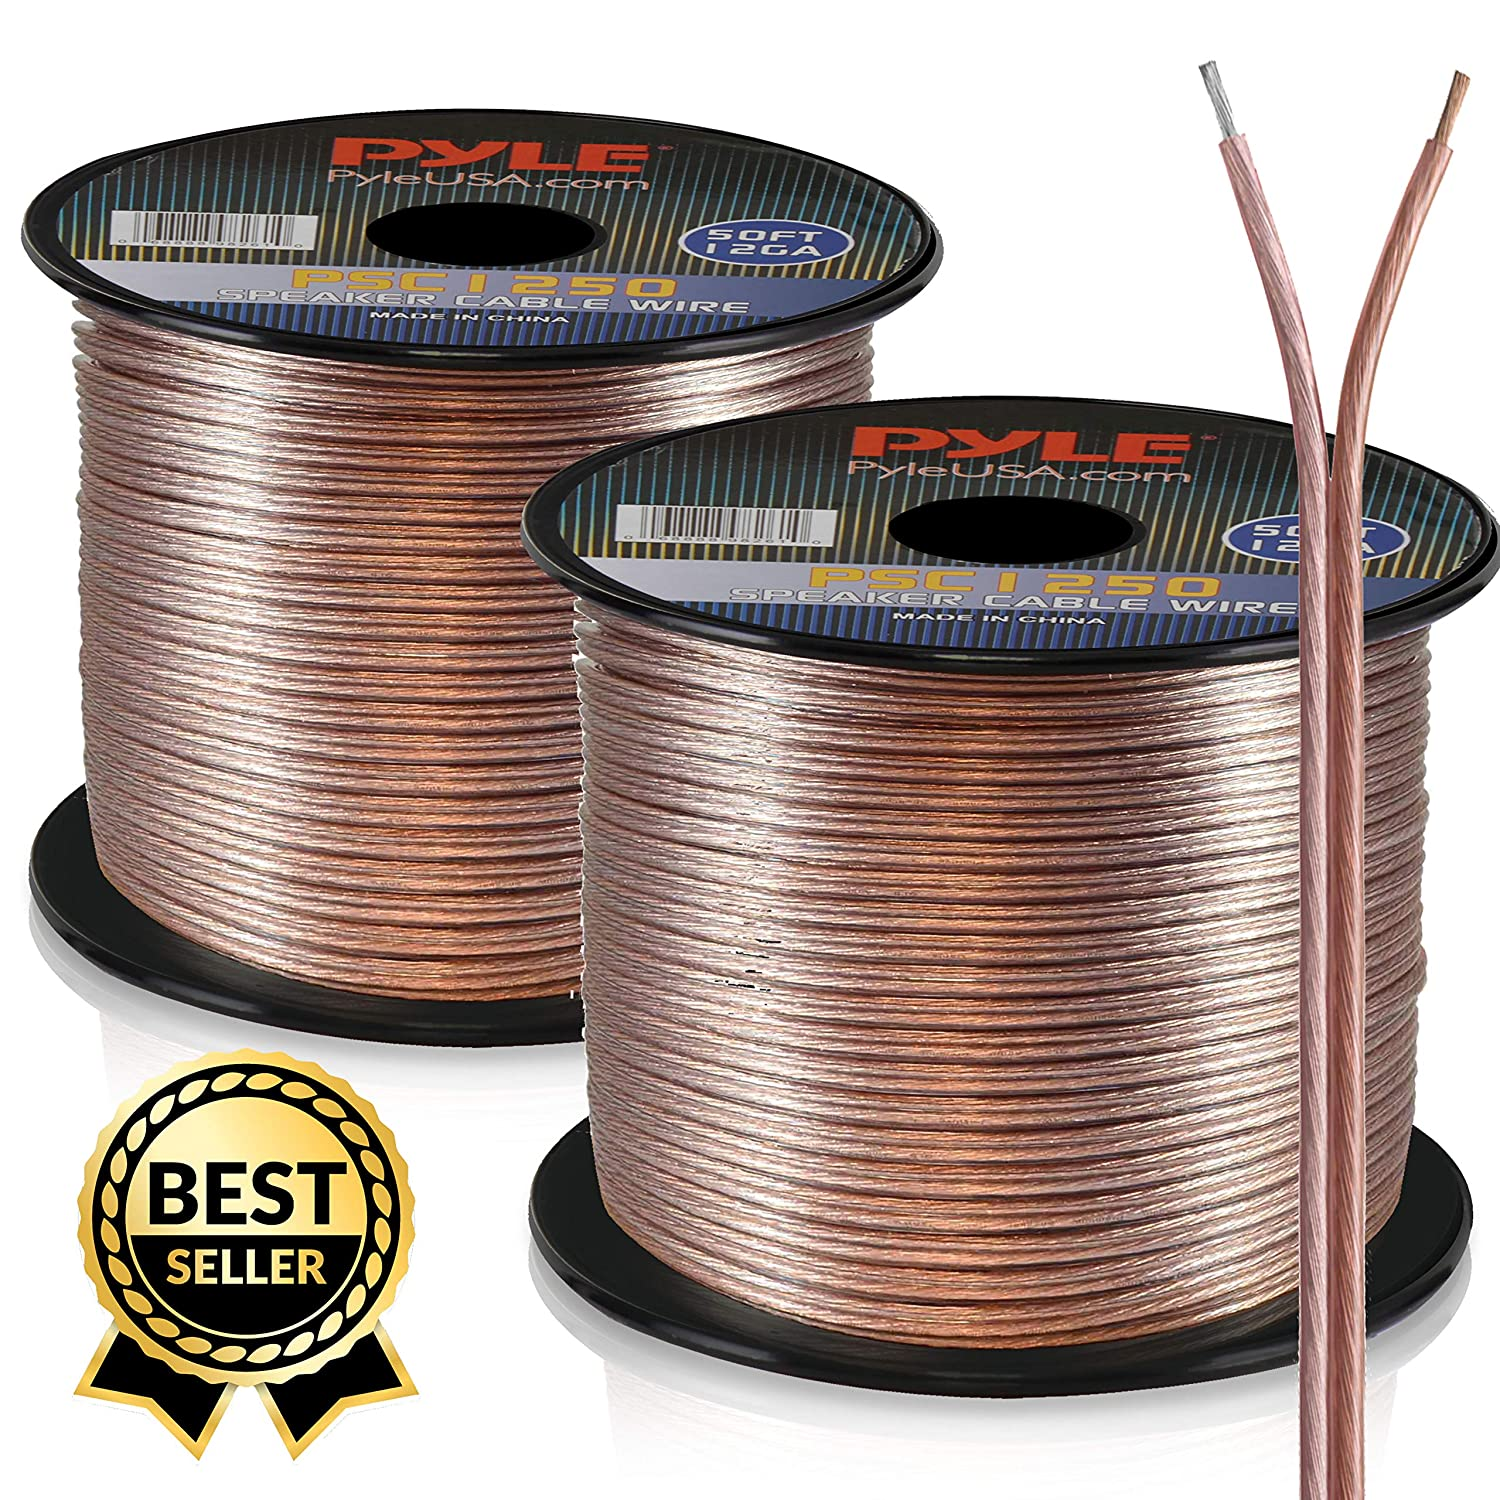 50ft 12 Gauge Speaker Wire - Copper Cable in Spool for Connecting Audio Wiring Surround Sound on